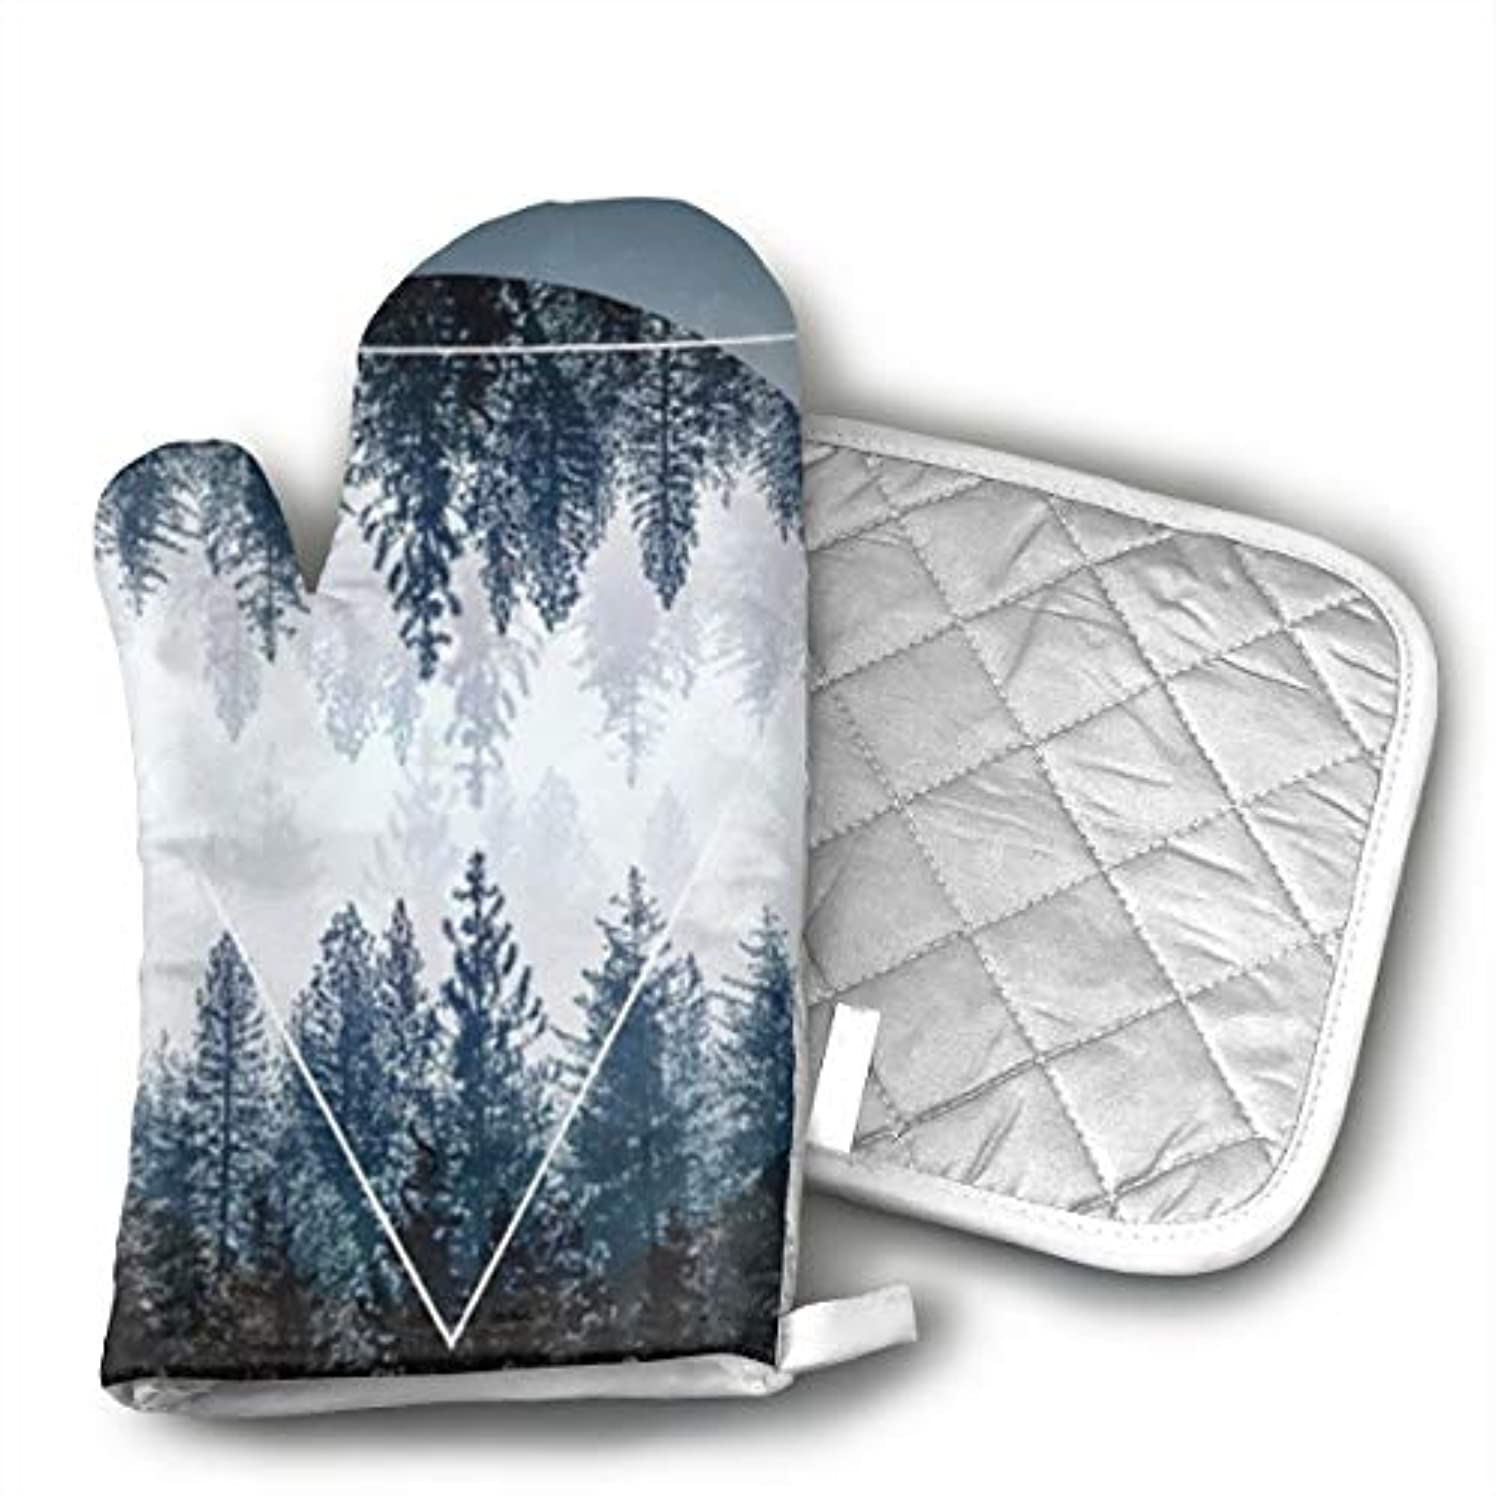 Glovesdkhh Sunset Forest Ocean and Mountains Oven Mitts Flame Retardant Mitts Heat Resistant to 425 Degrees F 11.8 Inch and Pot Holders